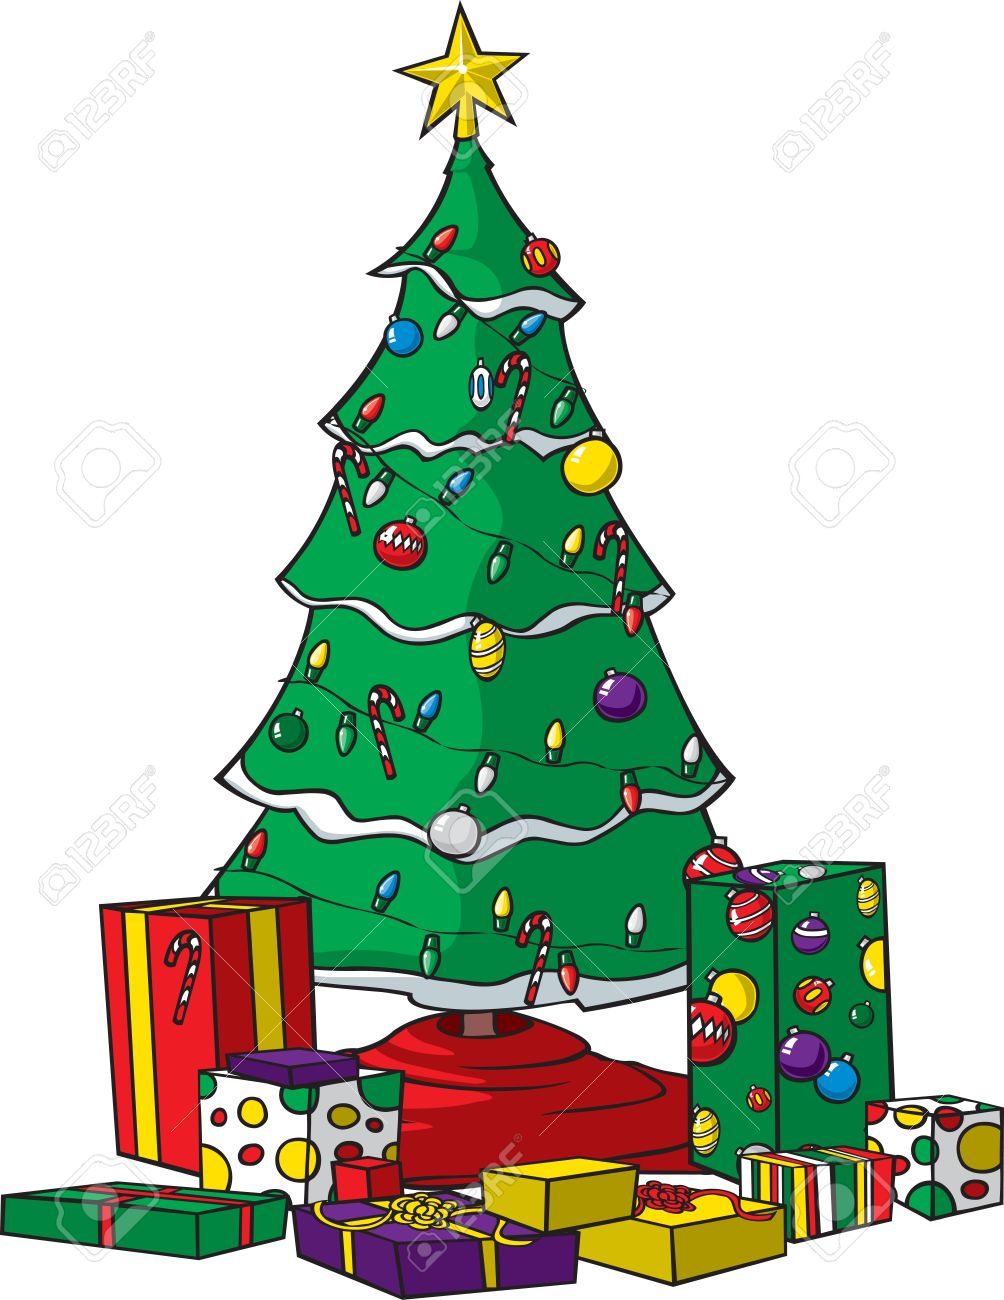 A Vector Cartoon Christmas Tree With Ornaments, Lights And ...